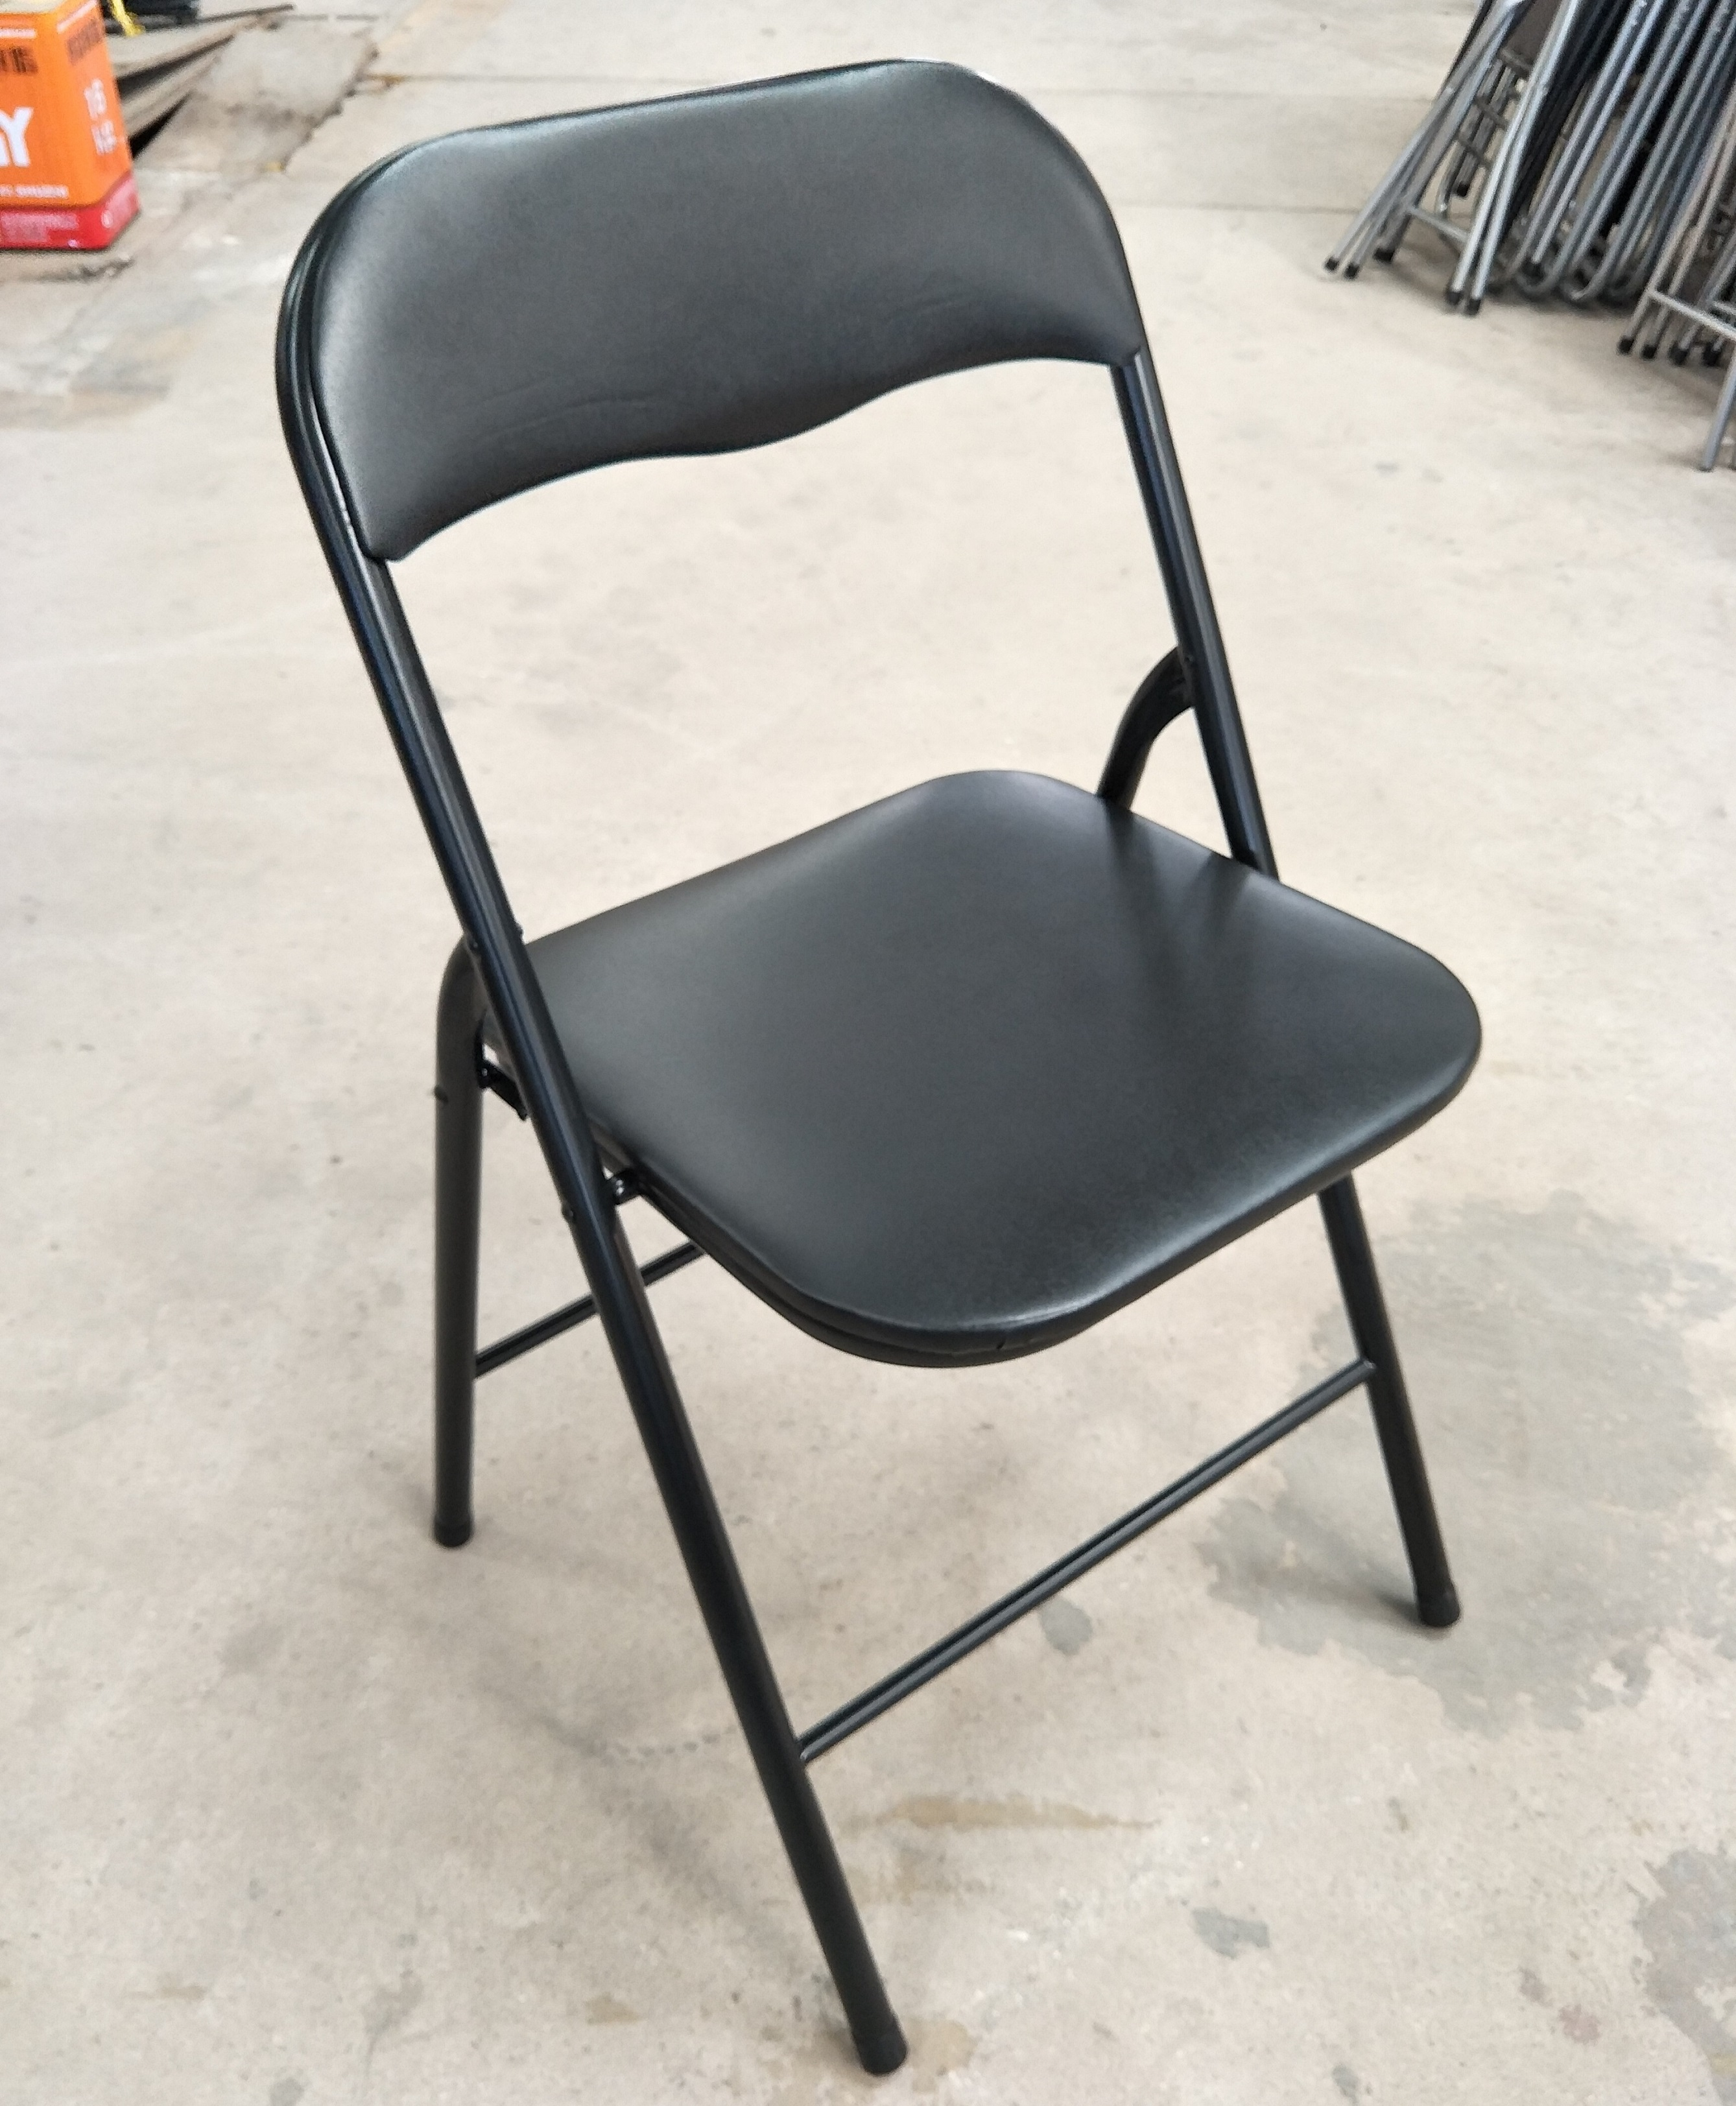 Steel Tube Folding Chair With Pvc And Foam Padded Seat Buy Steel Tube Folding Chair Metal Frame Folding Chair Pvc Padded Folding Chair Product On Alibaba Com